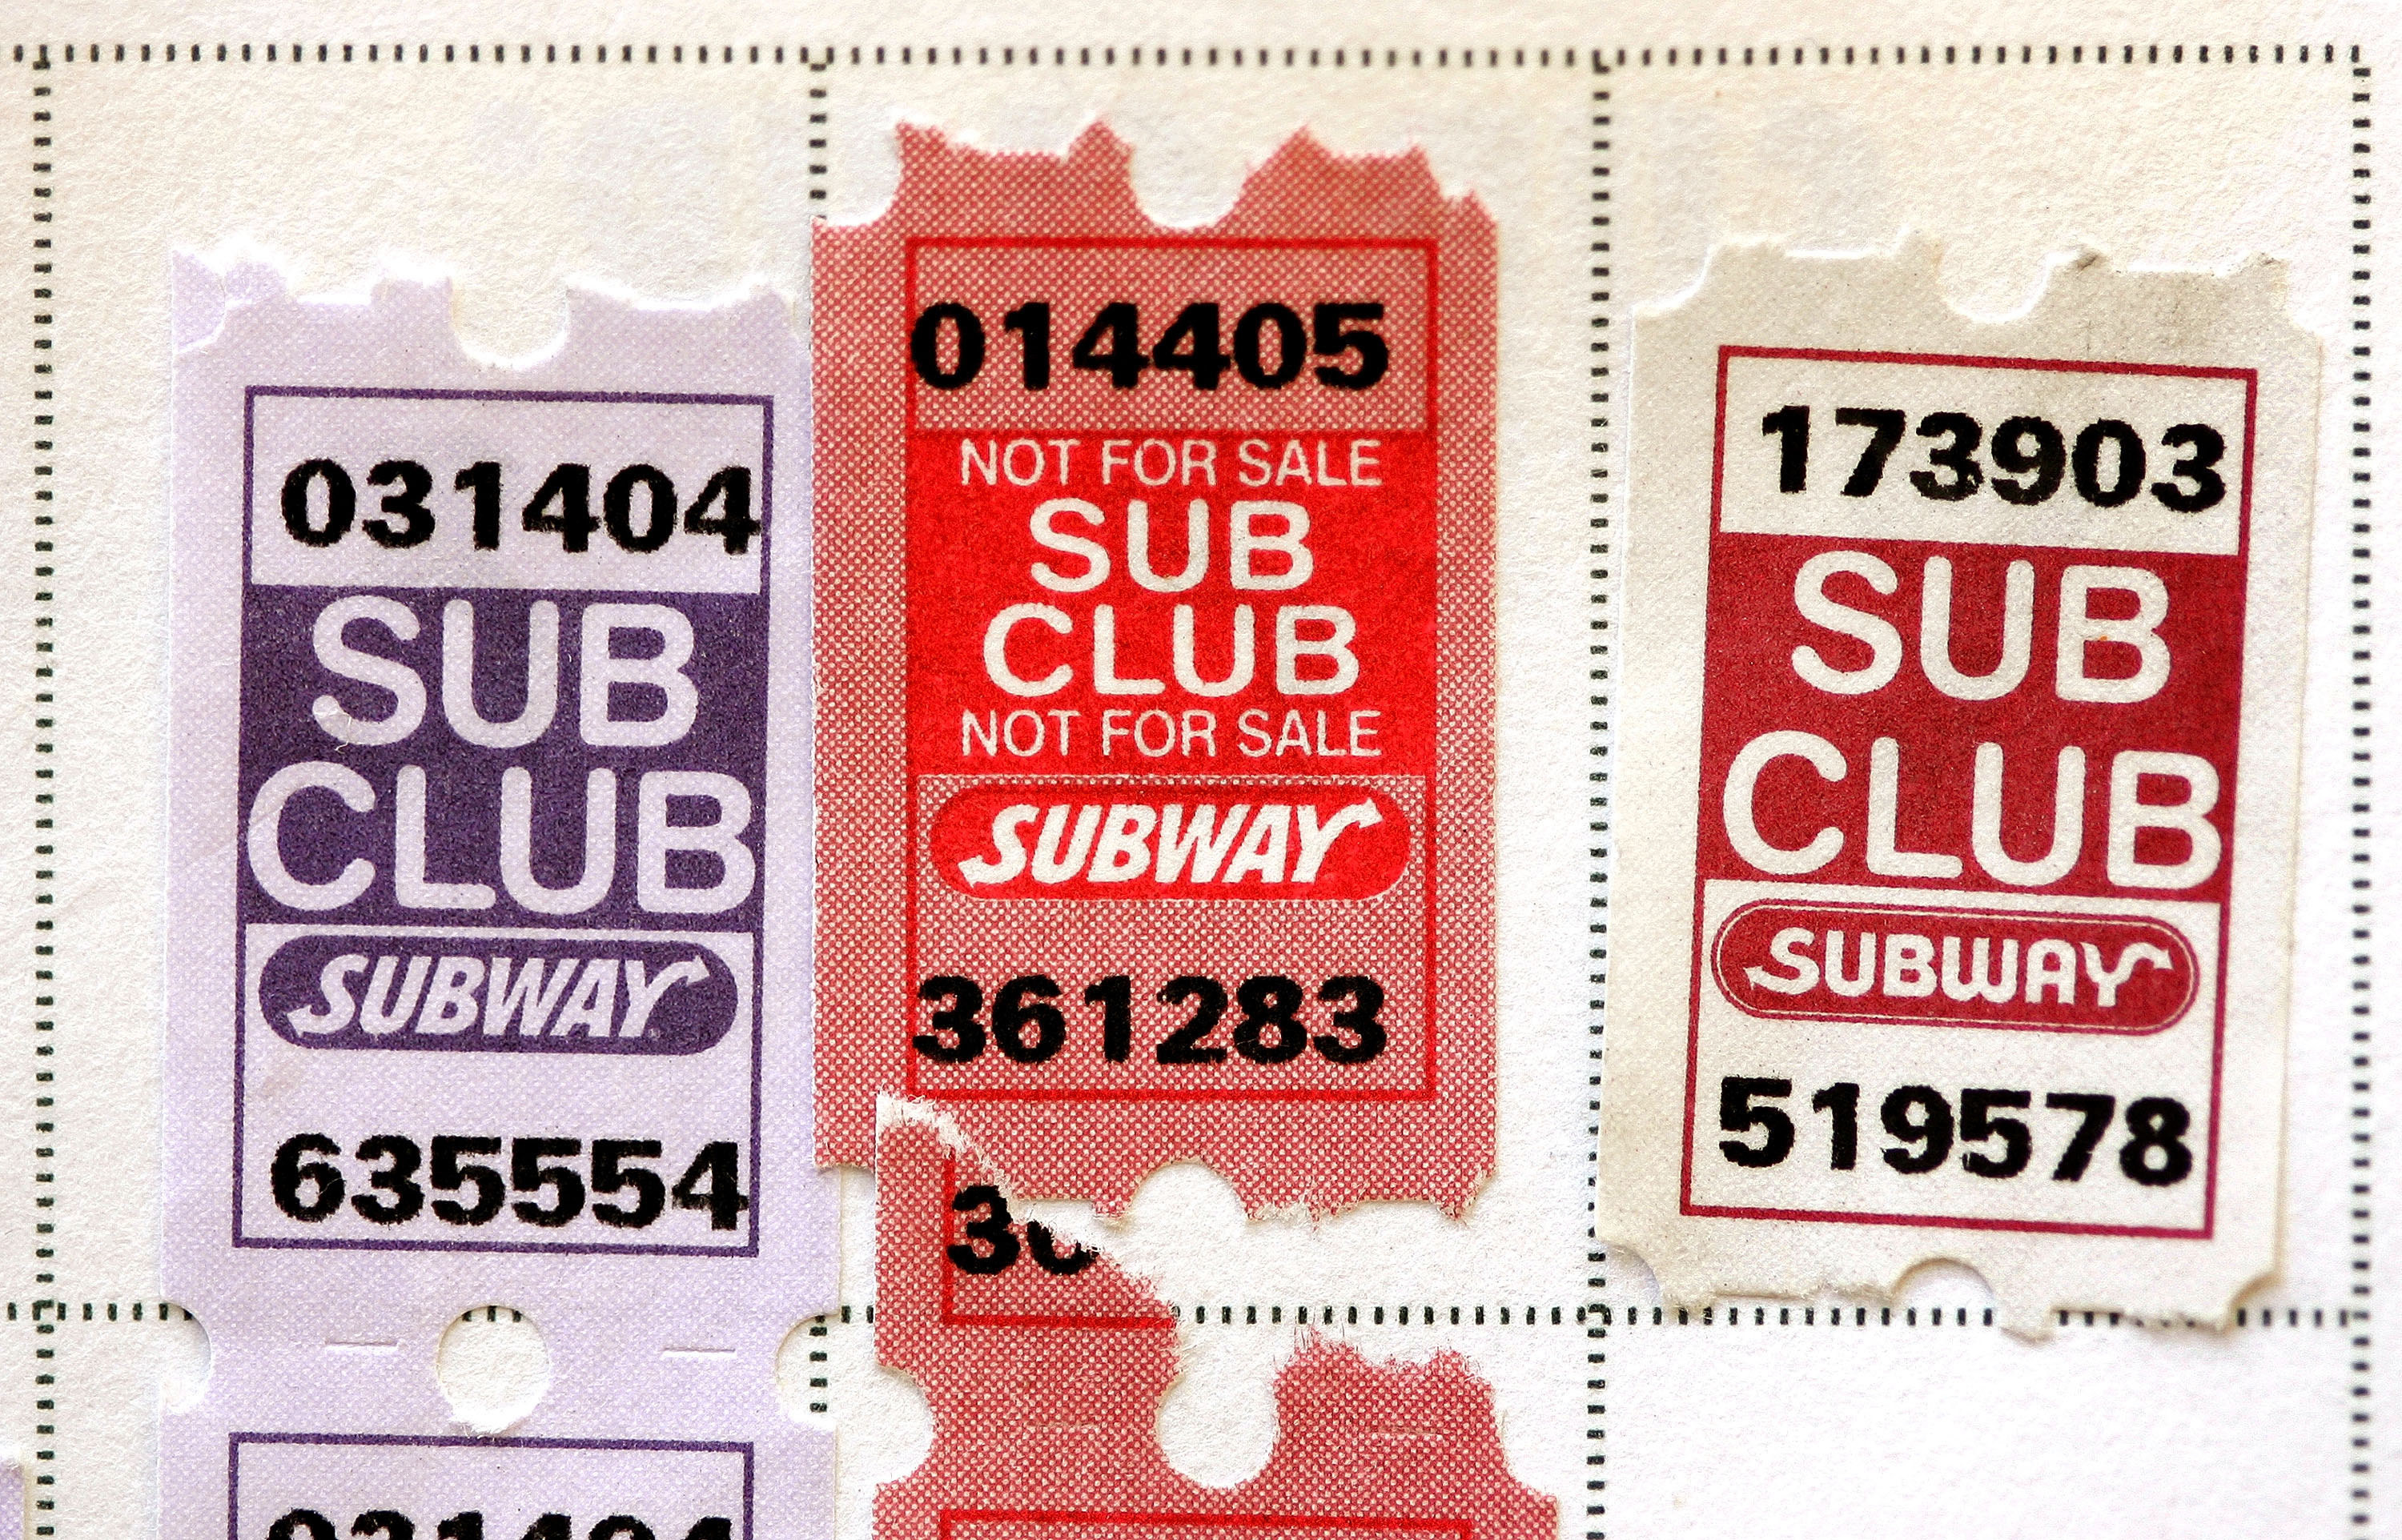 A close-up photo of Subway's Sub Club stamps